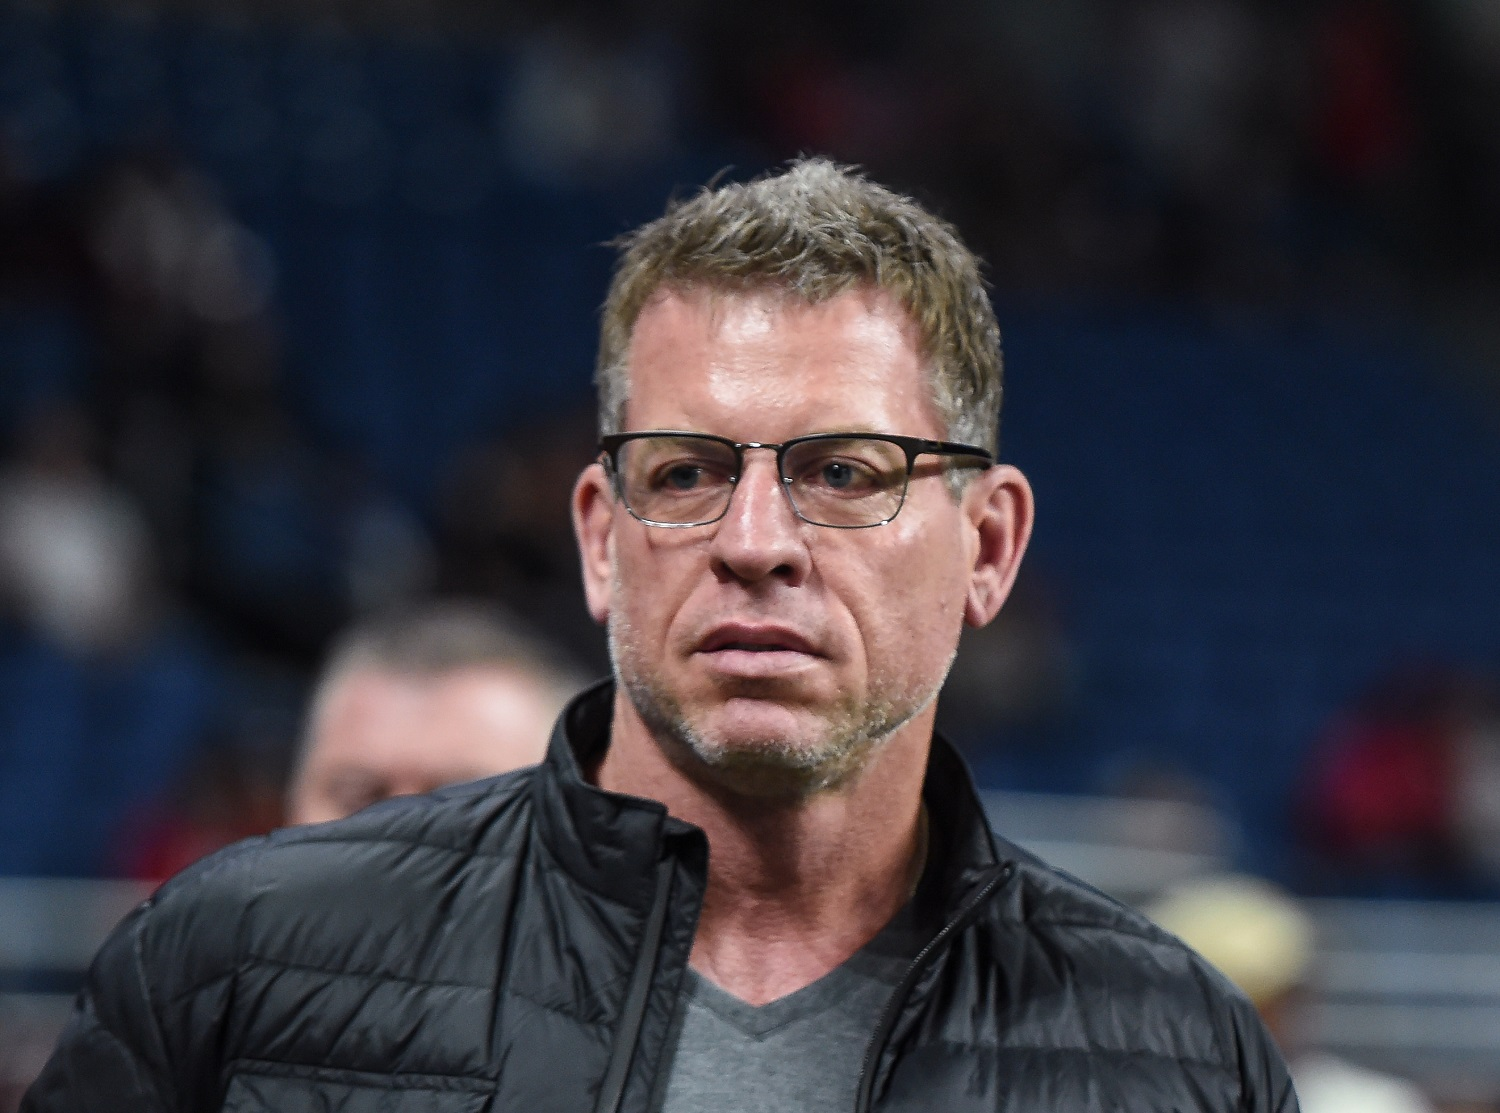 Troy Aikman Sends up a Warning to Fox Sports